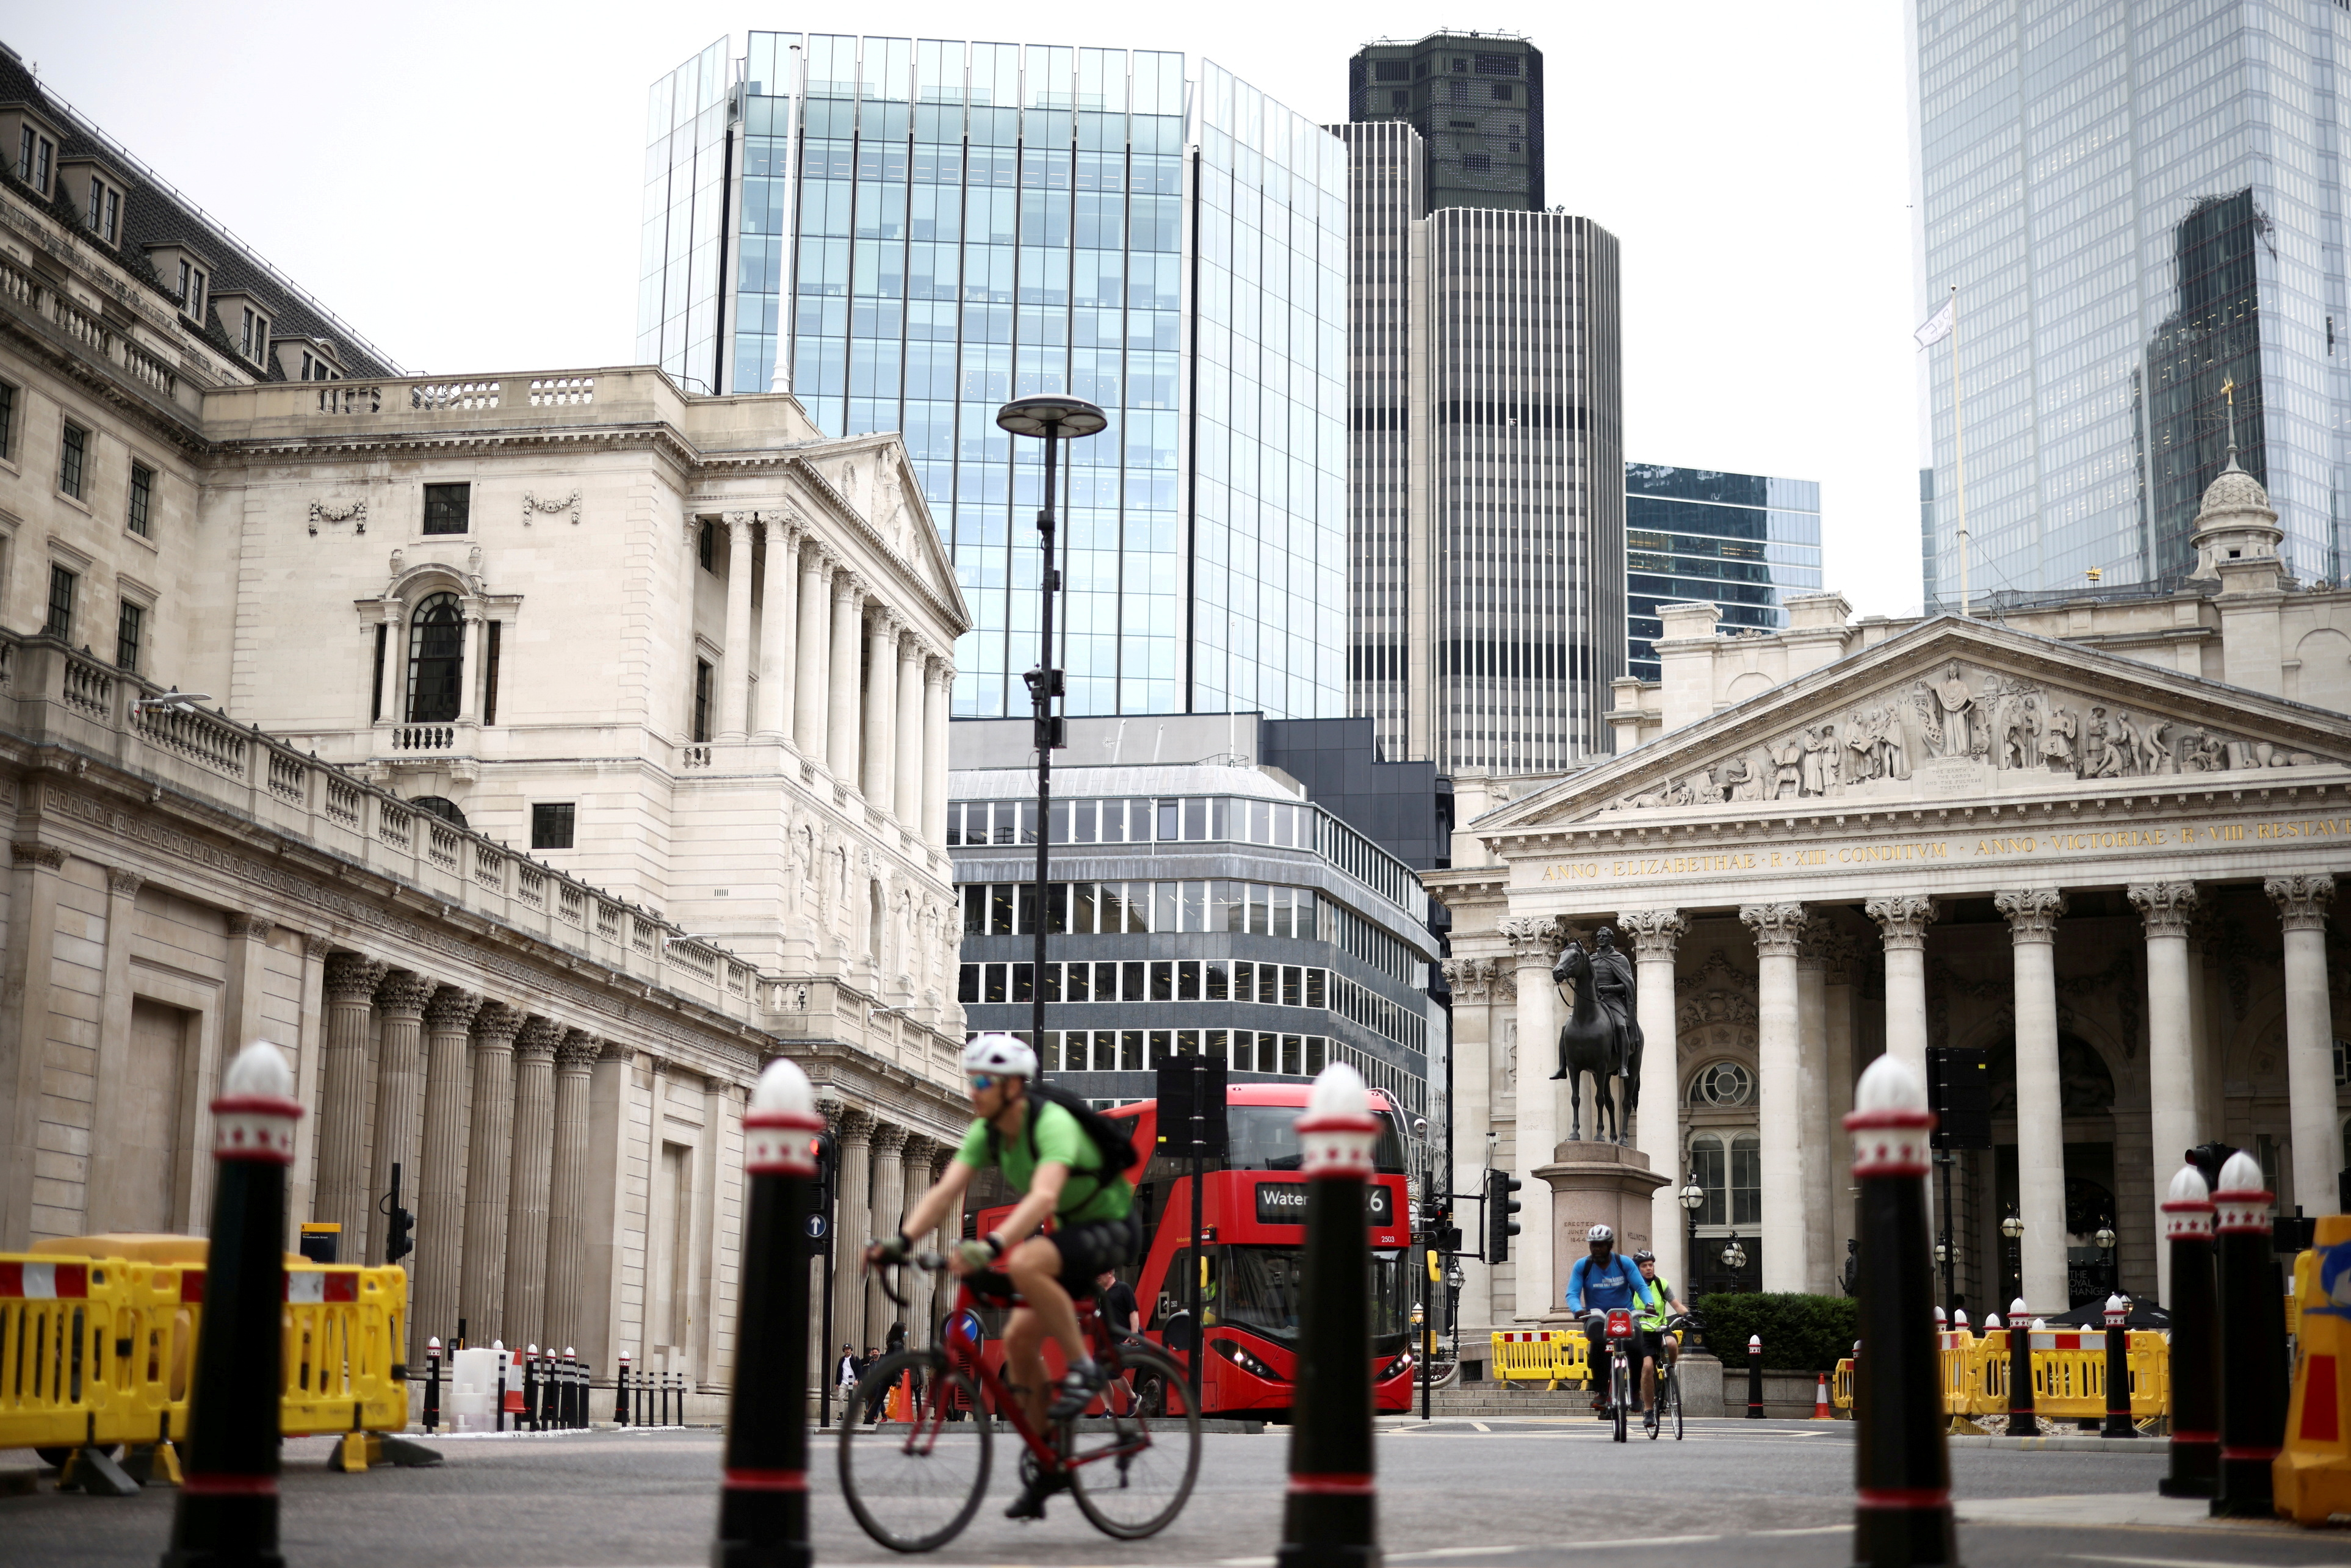 The Bank of England can be seen as people cycle through the City of London financial district, in London, Britain, June 11, 2021. REUTERS/Henry Nicholls